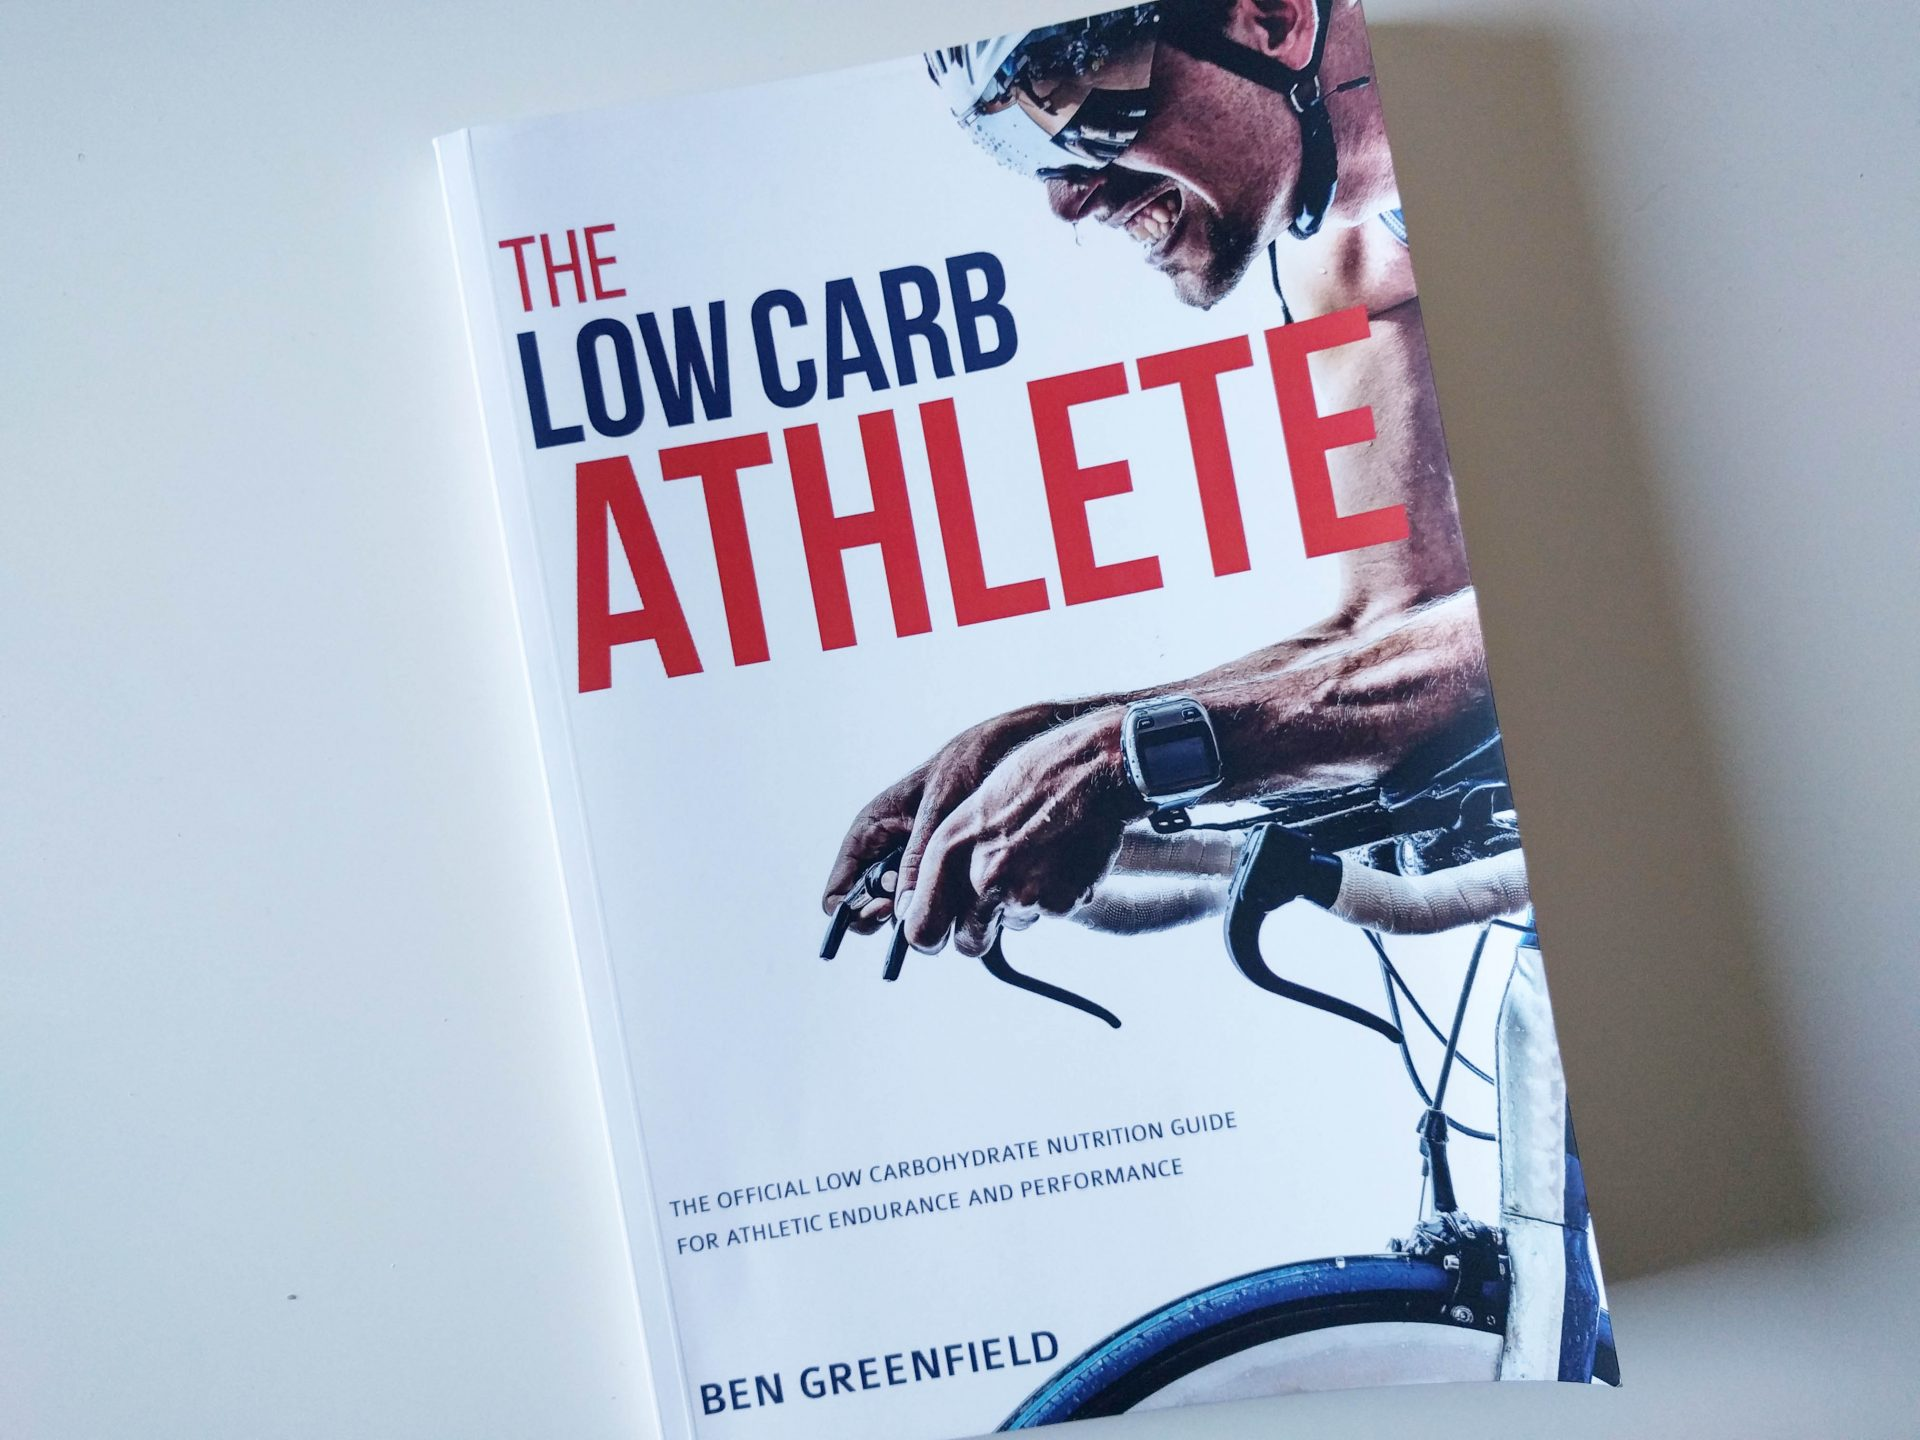 The Low Carb Athlete by Ben Greenfield